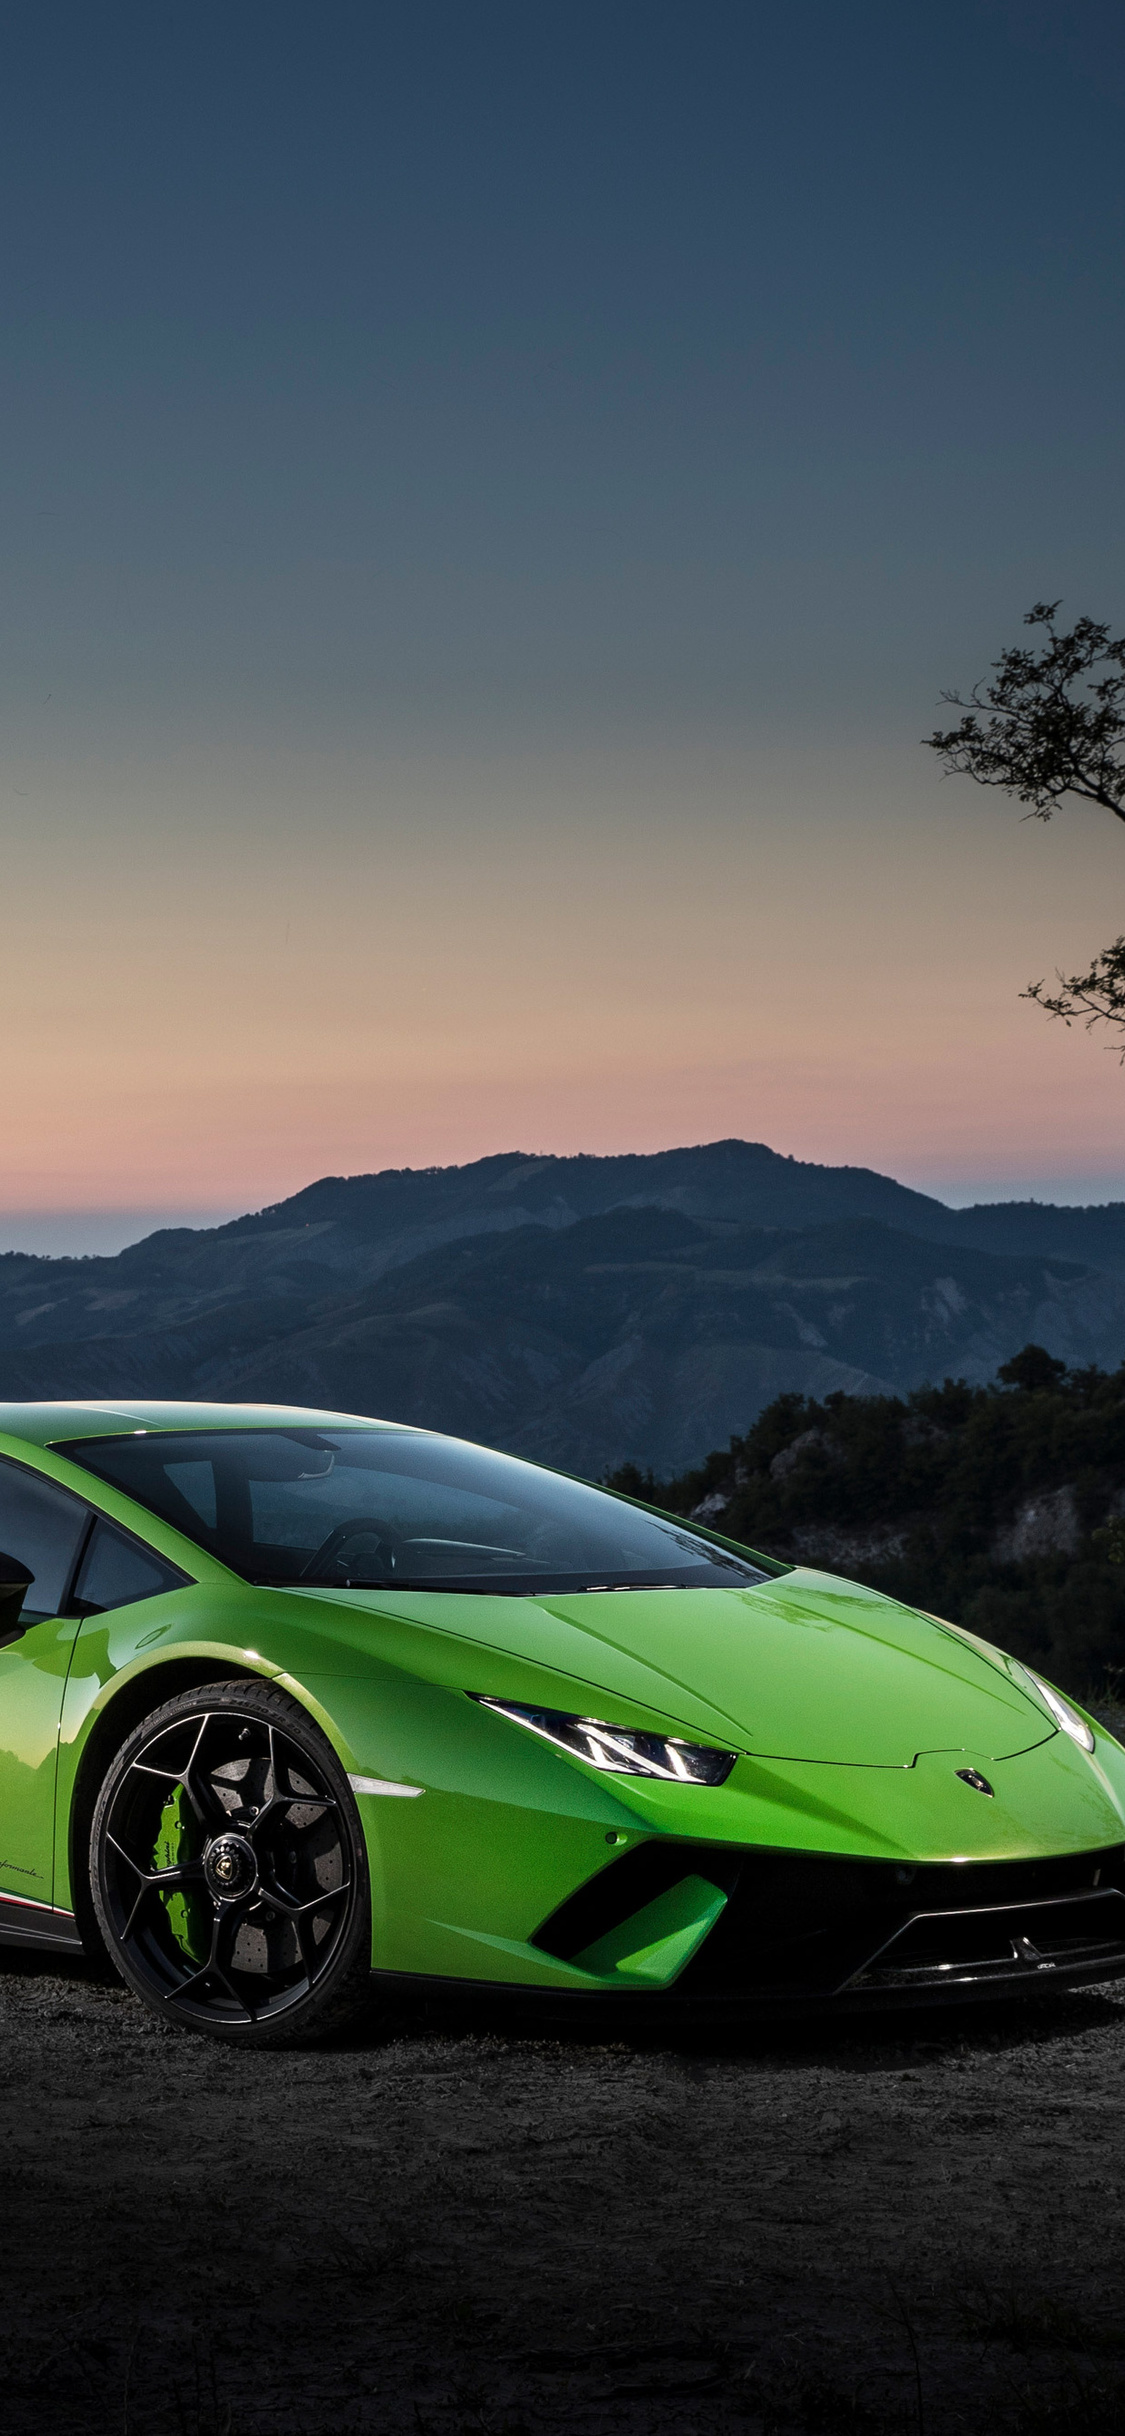 1125x2436 4k Lamborghini Huracan Performante Iphone Xs